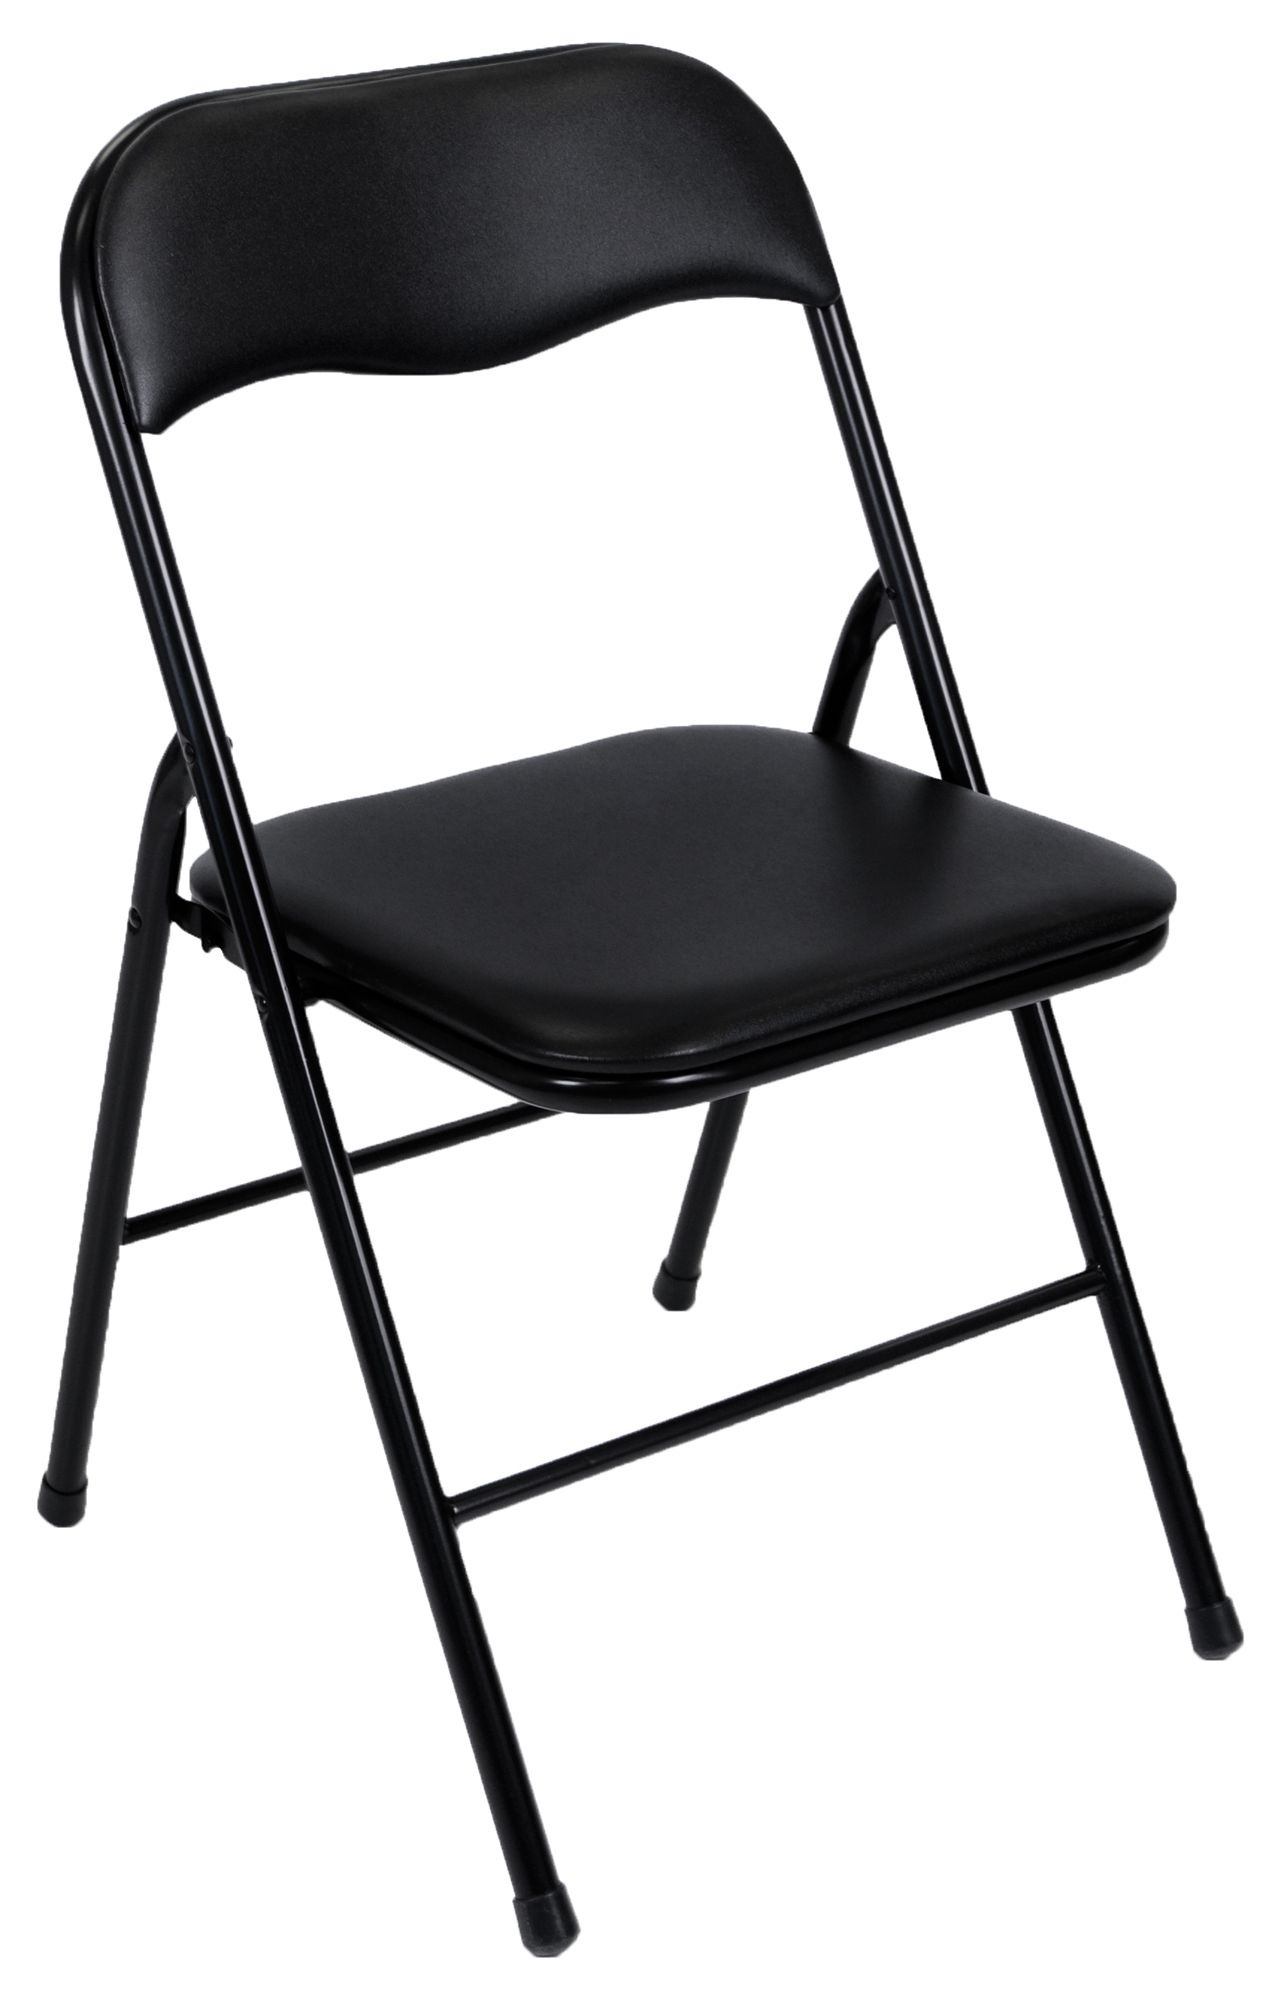 Folding Chairs Canadian Tire Folding Chairs Black Black Folding Chair Kitchen Dining Room